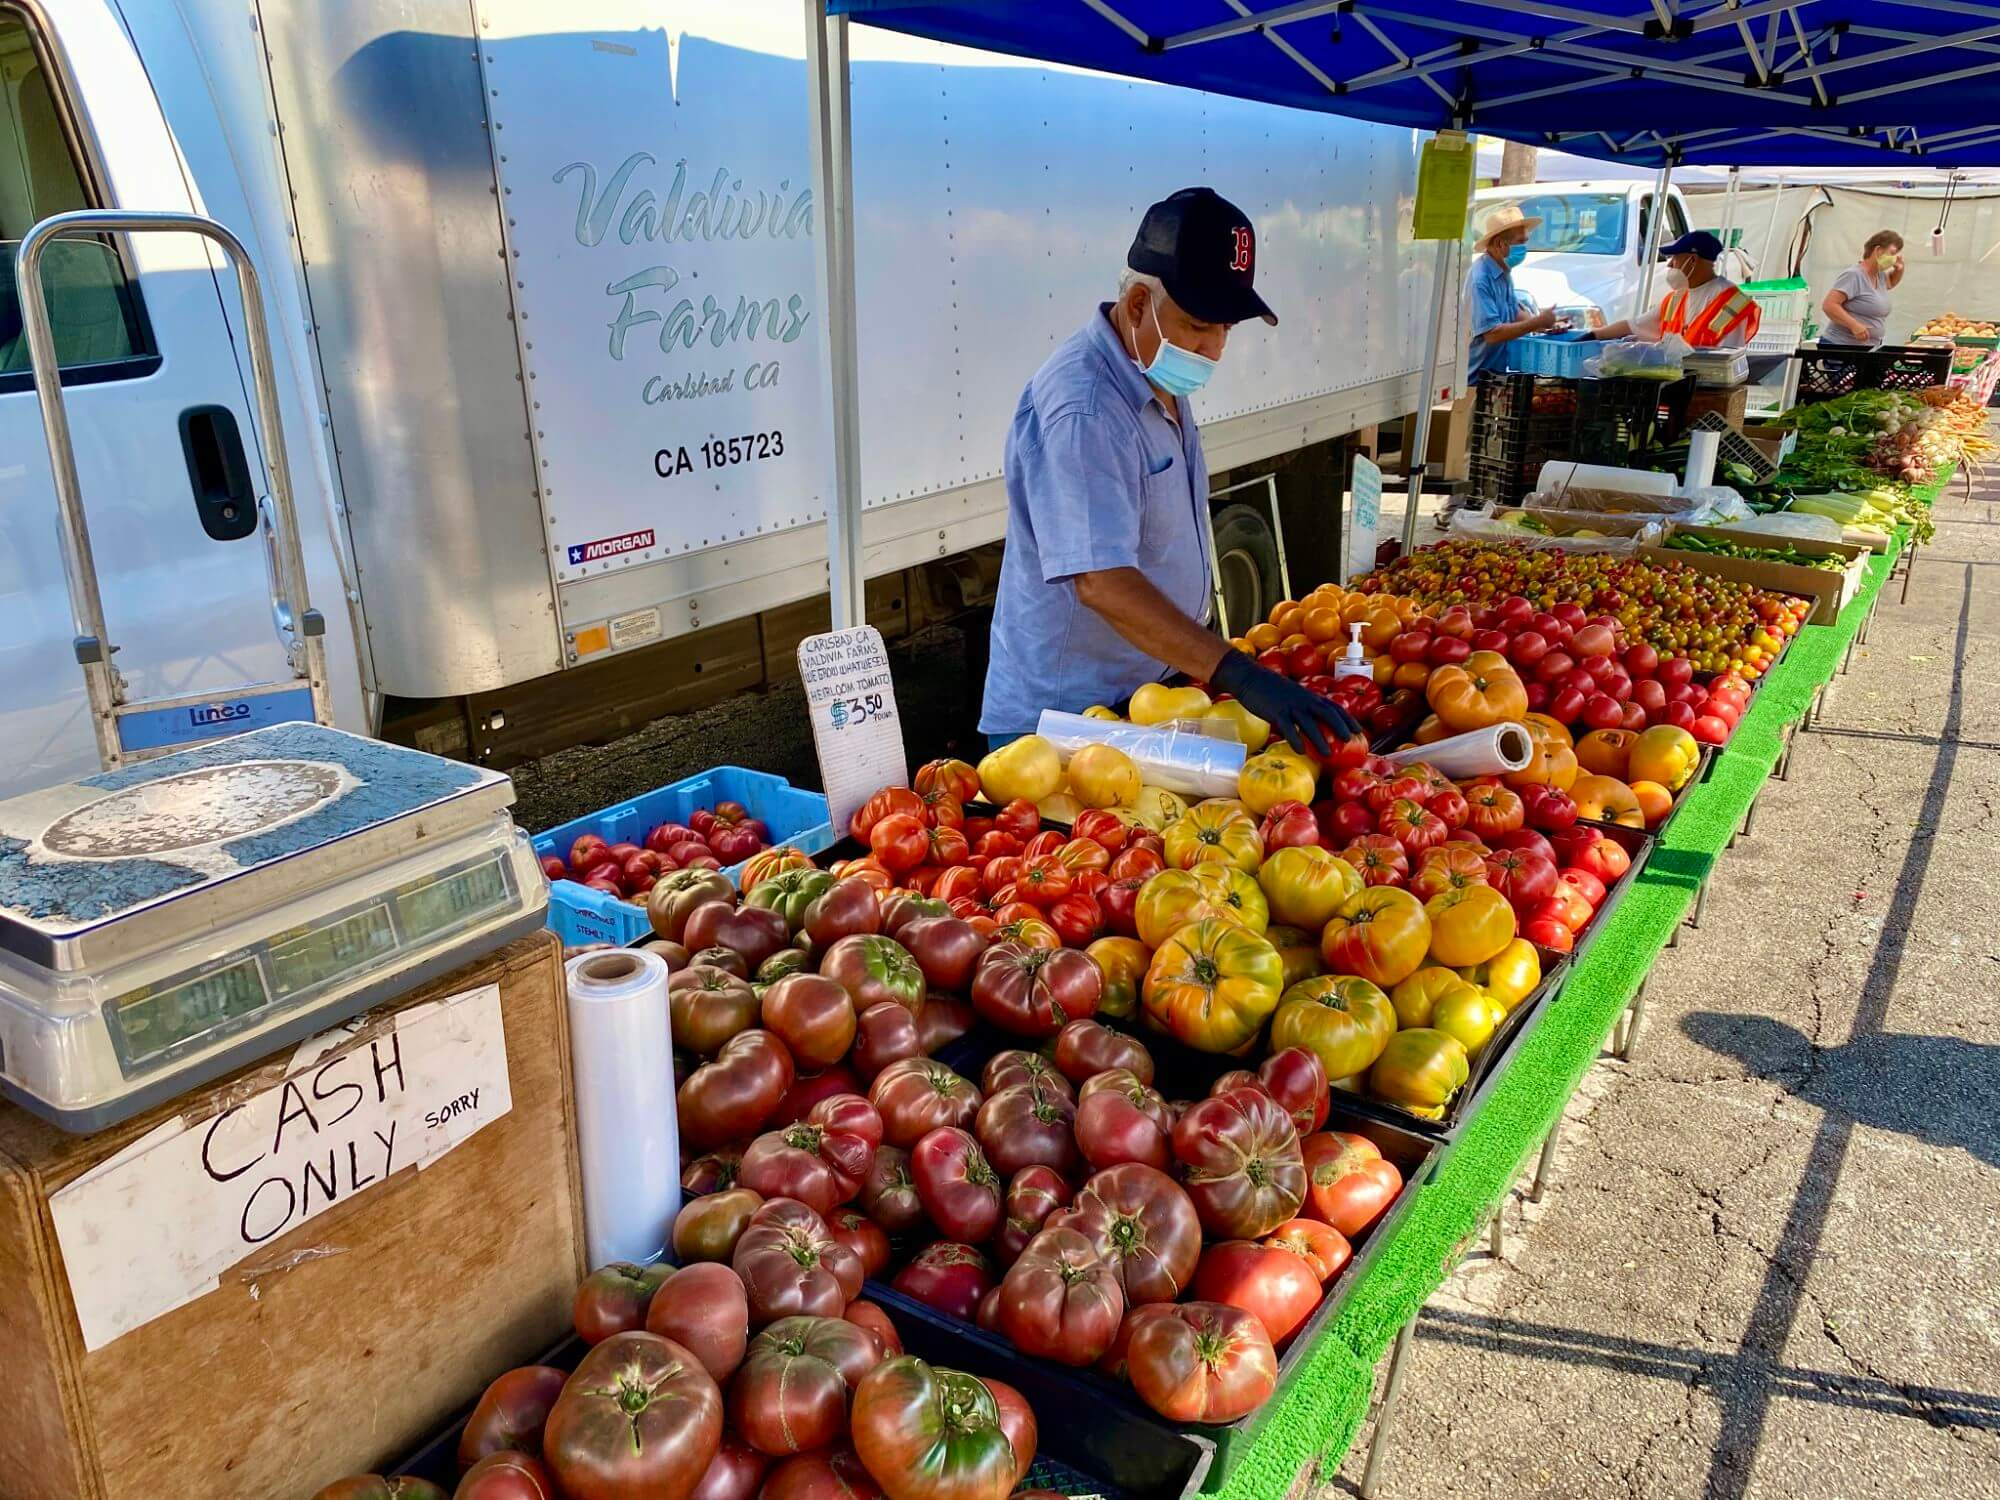 Produce stall at Santa Monica Farmers Market